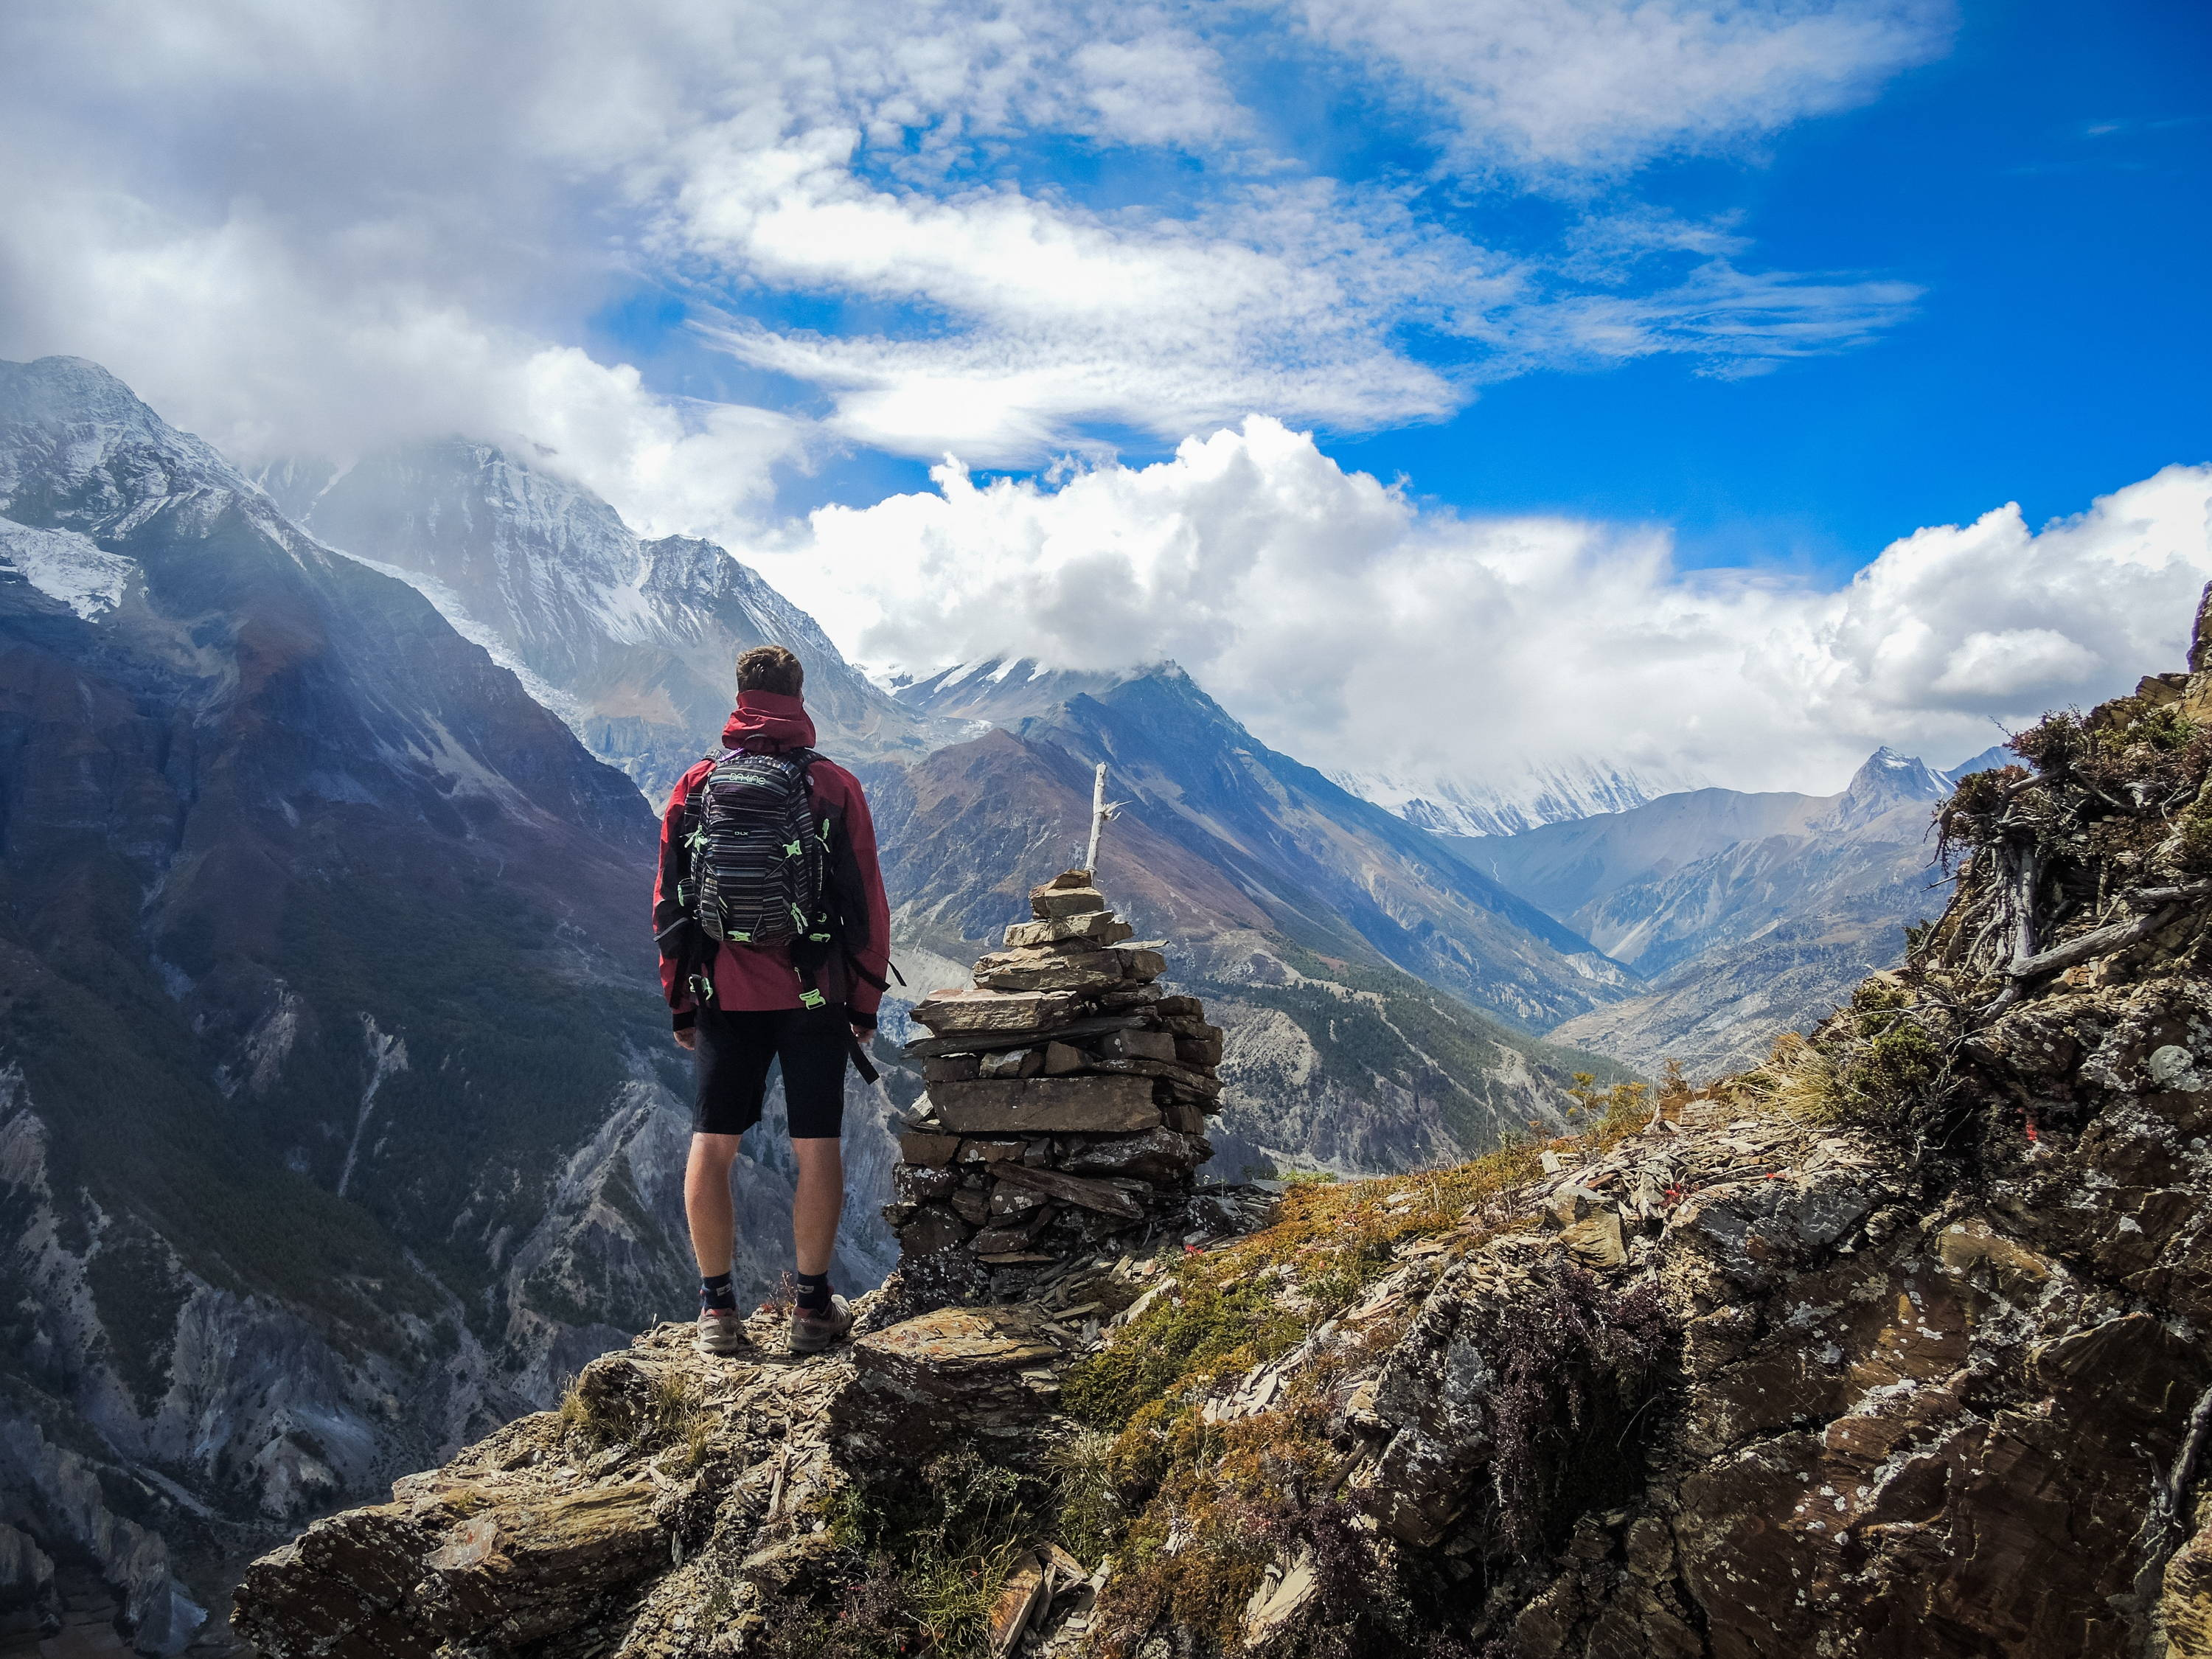 Adventure Vacations For Adrenaline Junkies: Man looks in amazement at valley and mountain setting in Nepal.